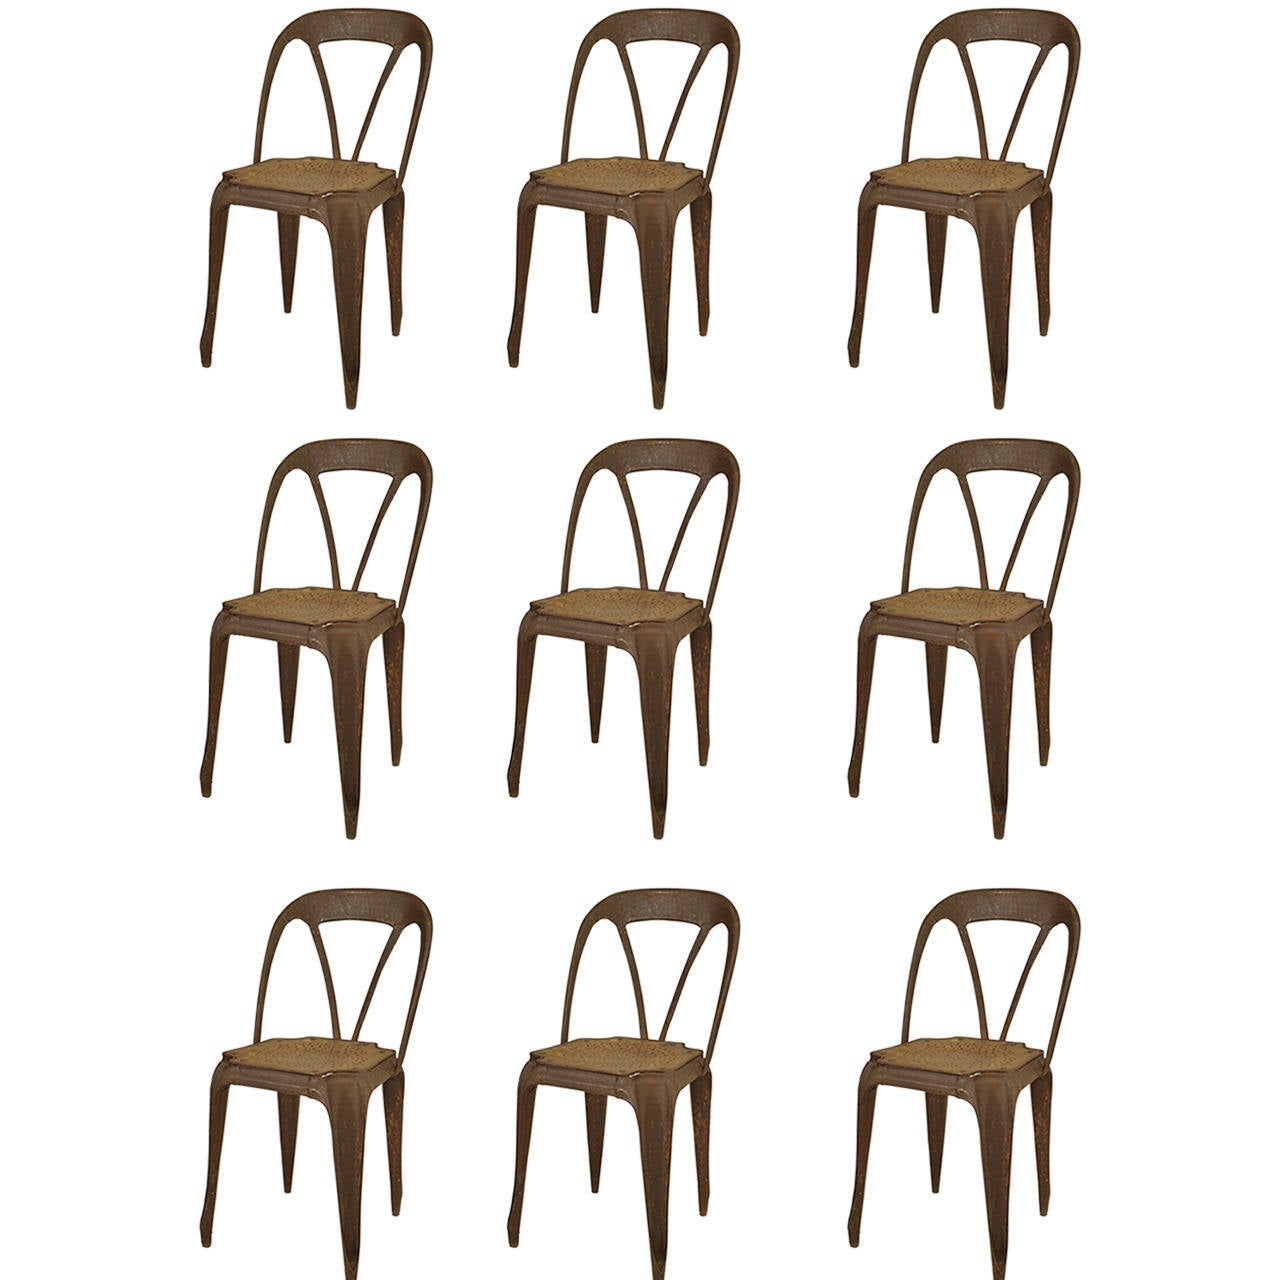 Metal outdoor stacking chairs - 9 French Art Deco Metal Stacking Side Chairs 1